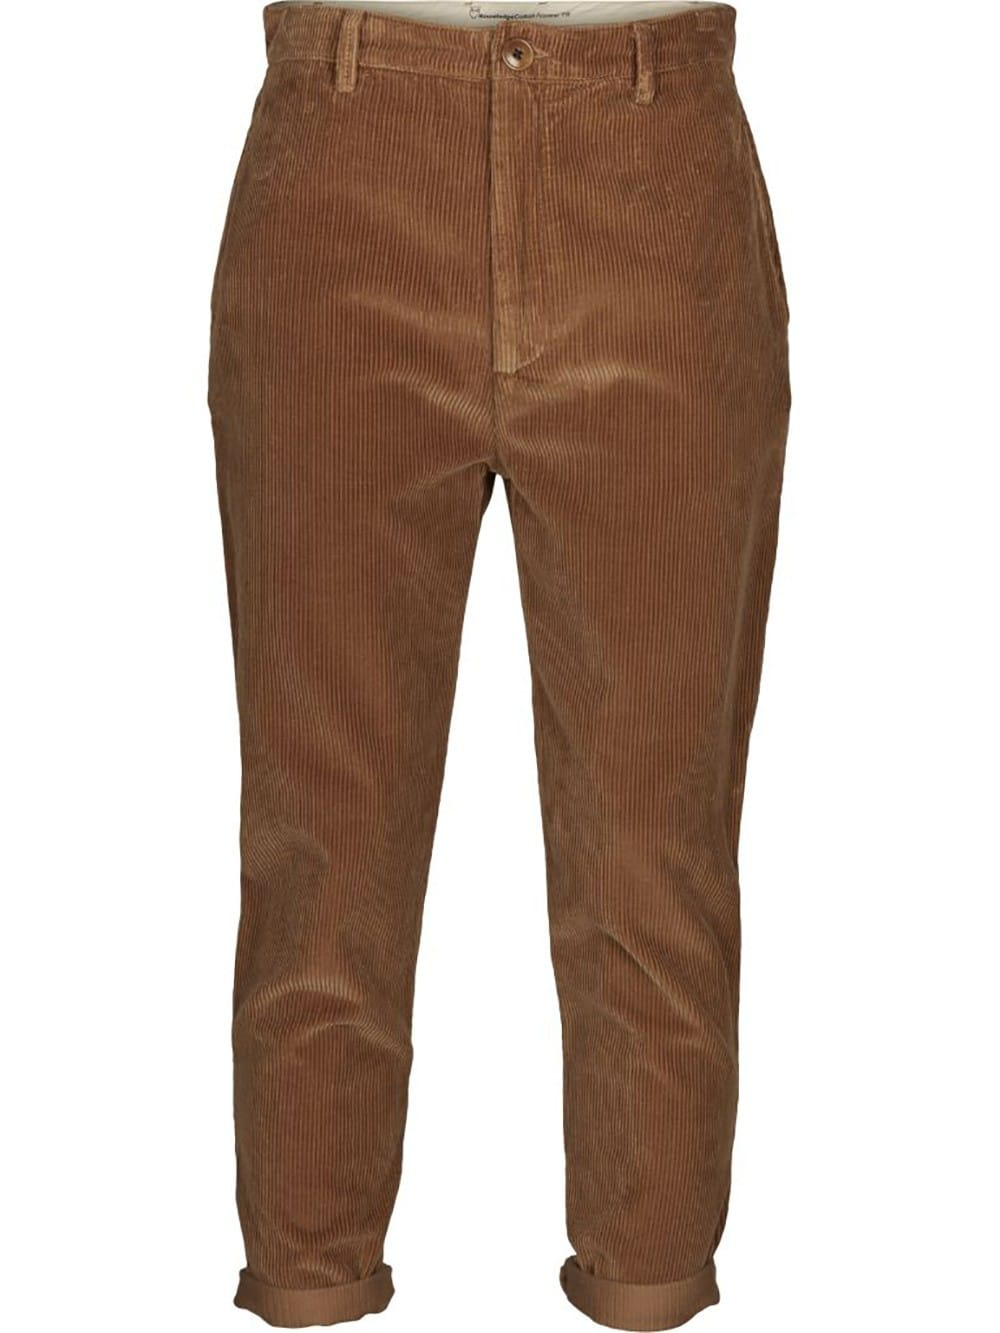 Organic cotton brown corduroy trousers